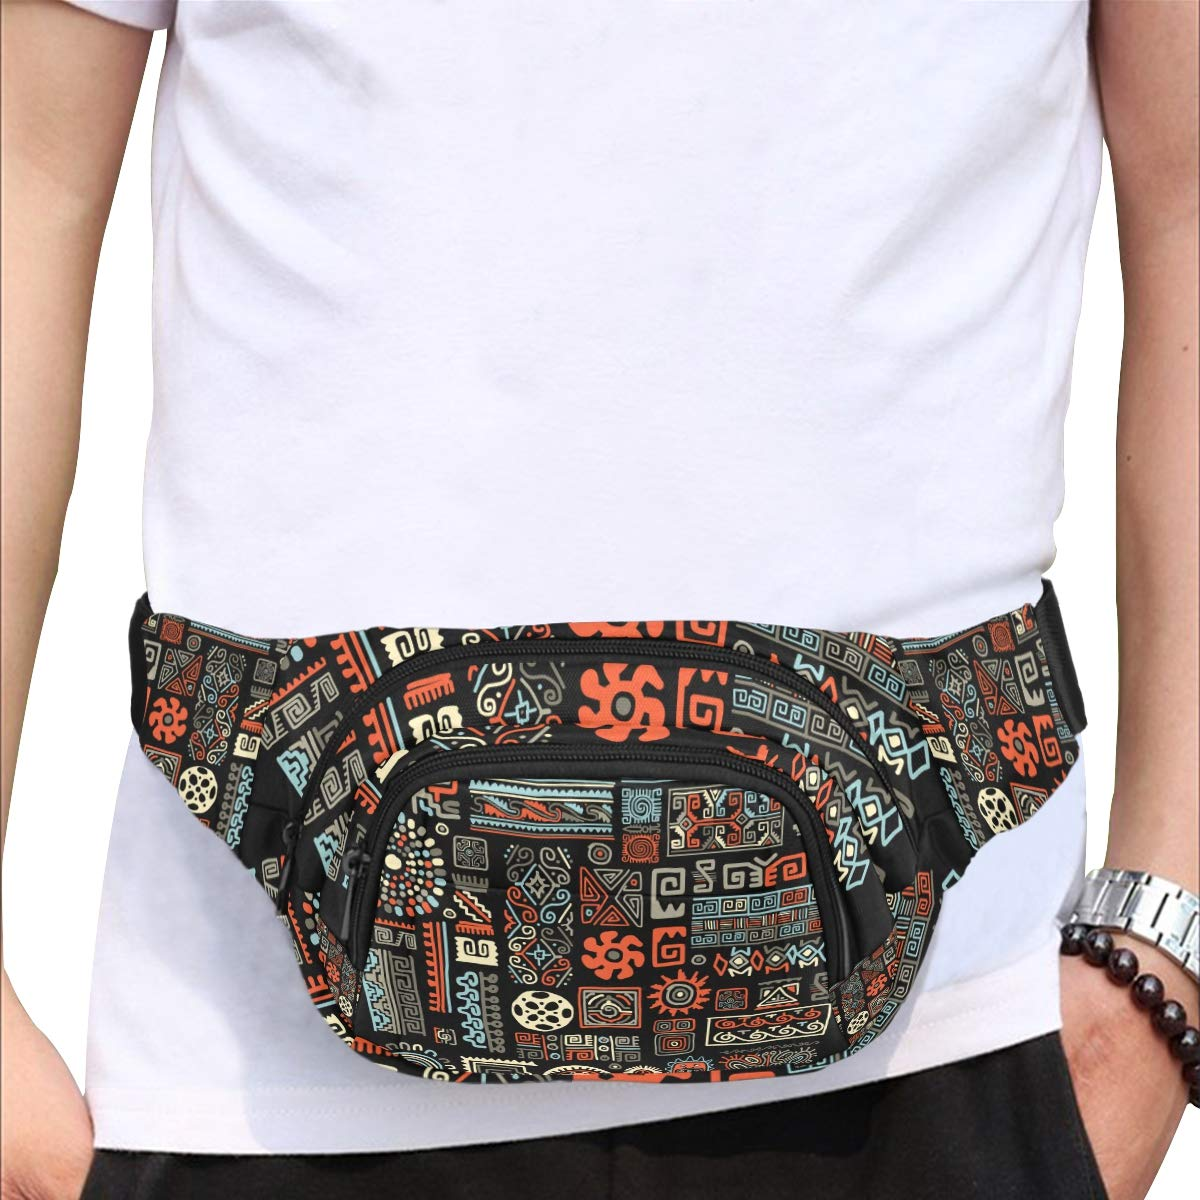 Beautiful Ethnic Decorative Lines Fenny Packs Waist Bags Adjustable Belt Waterproof Nylon Travel Running Sport Vacation Party For Men Women Boys Girls Kids